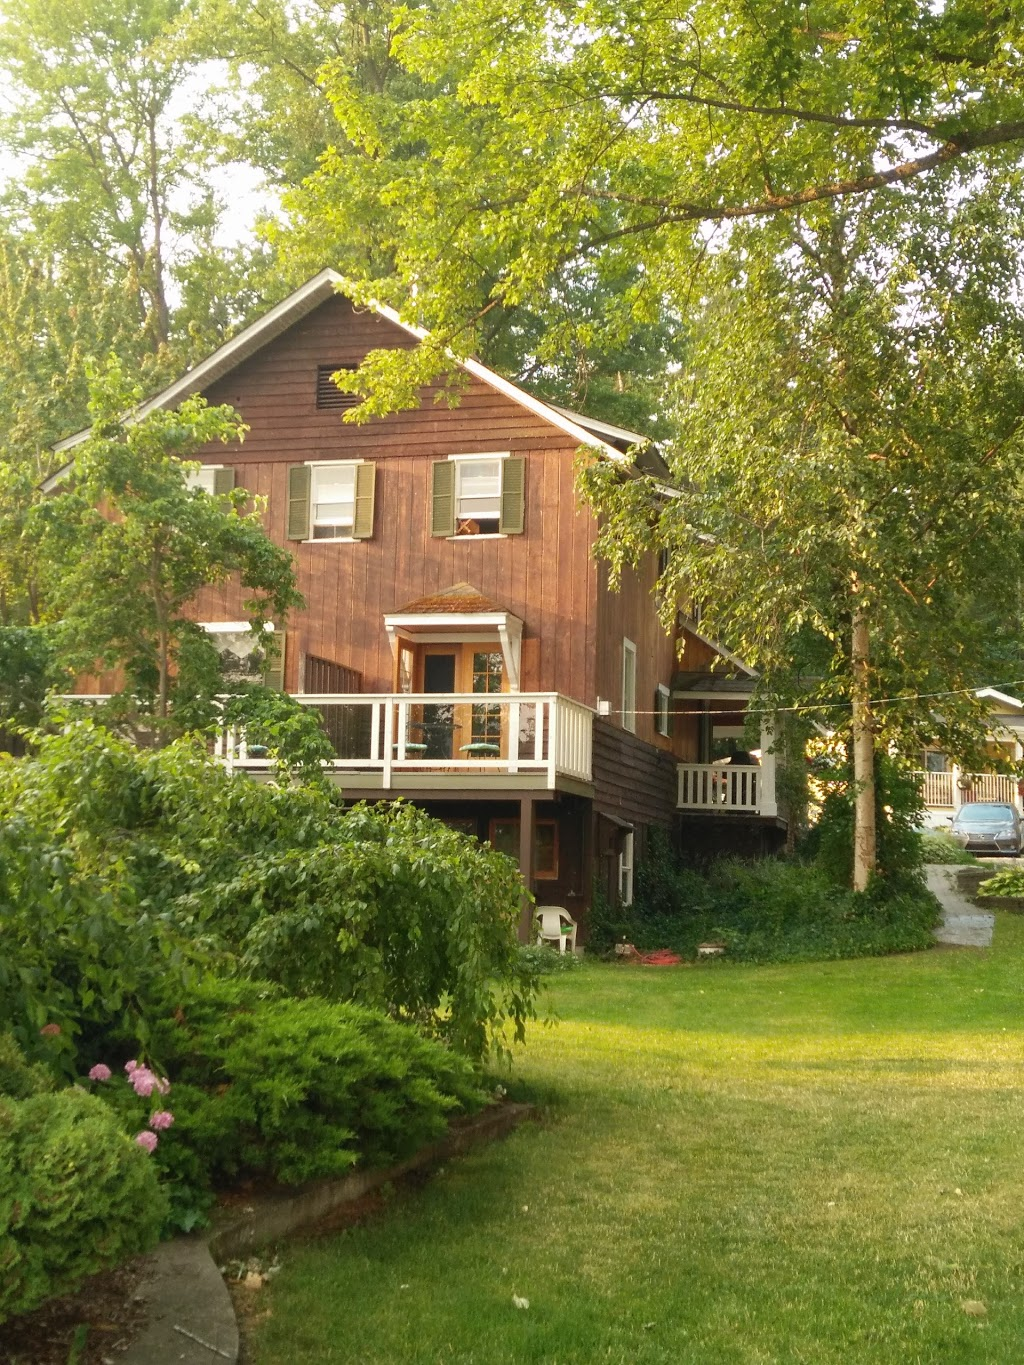 Maples Resort | lodging | 1283 Dieppe Rd, Sorrento, BC V0E 2W0, Canada | 2506752433 OR +1 250-675-2433